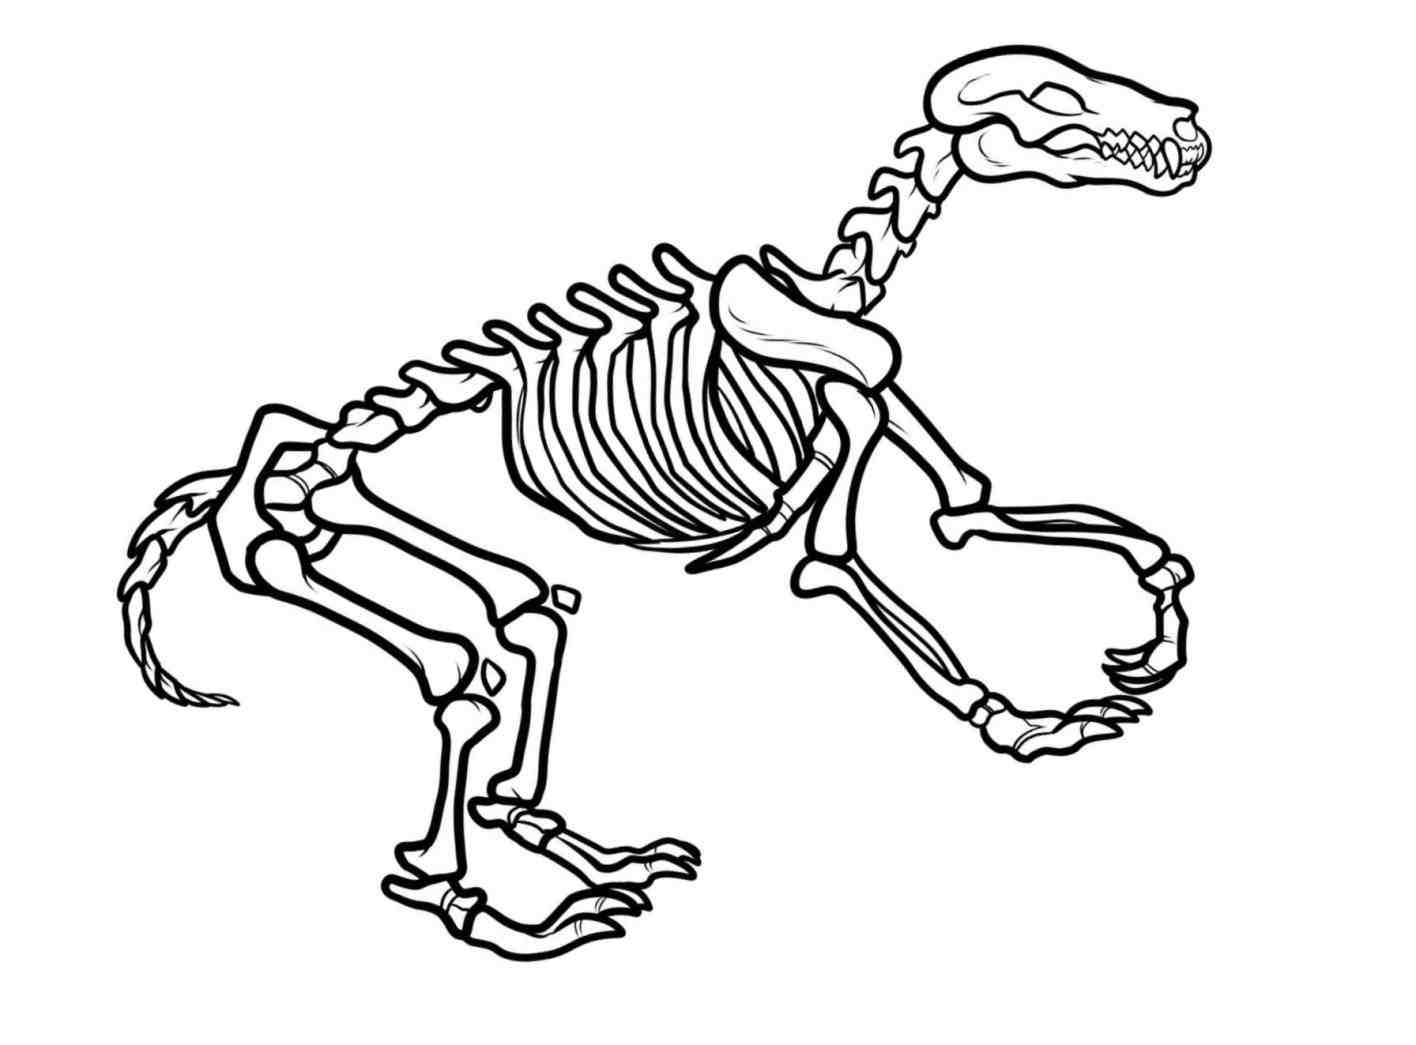 1416x1045 Drawings Of Dinosaur Fossils